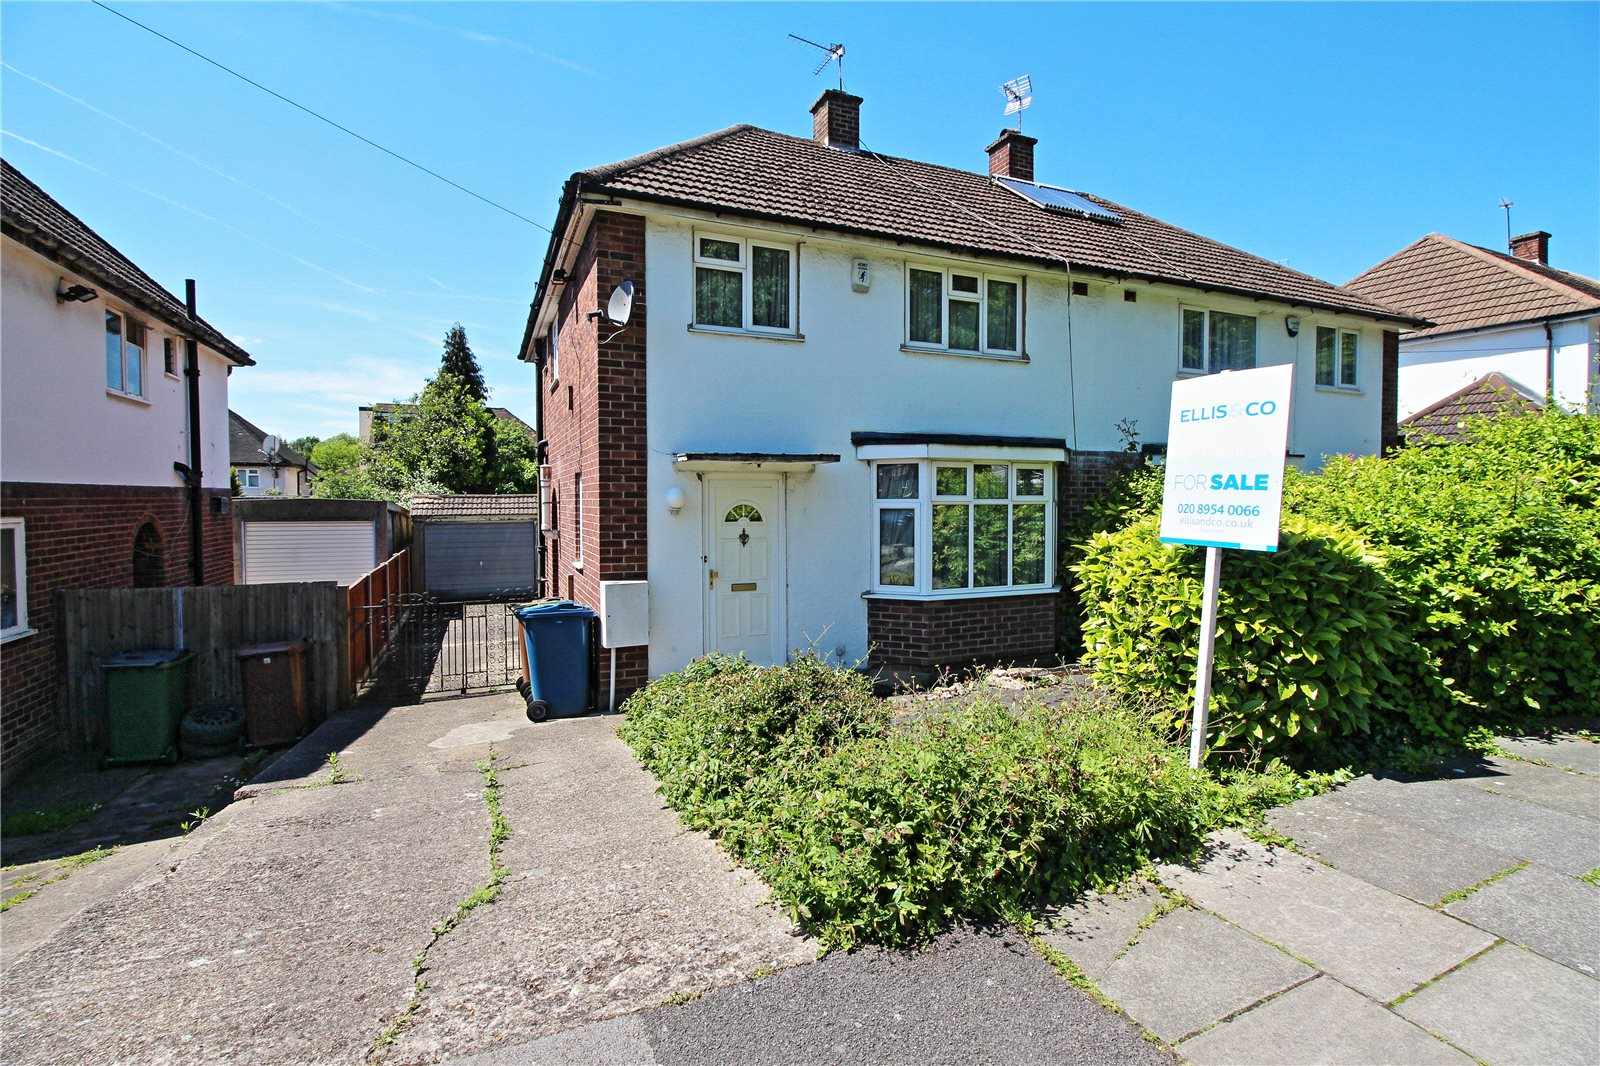 3 Bedrooms Semi Detached House for sale in Marsh Lane Stanmore Middlesex HA7